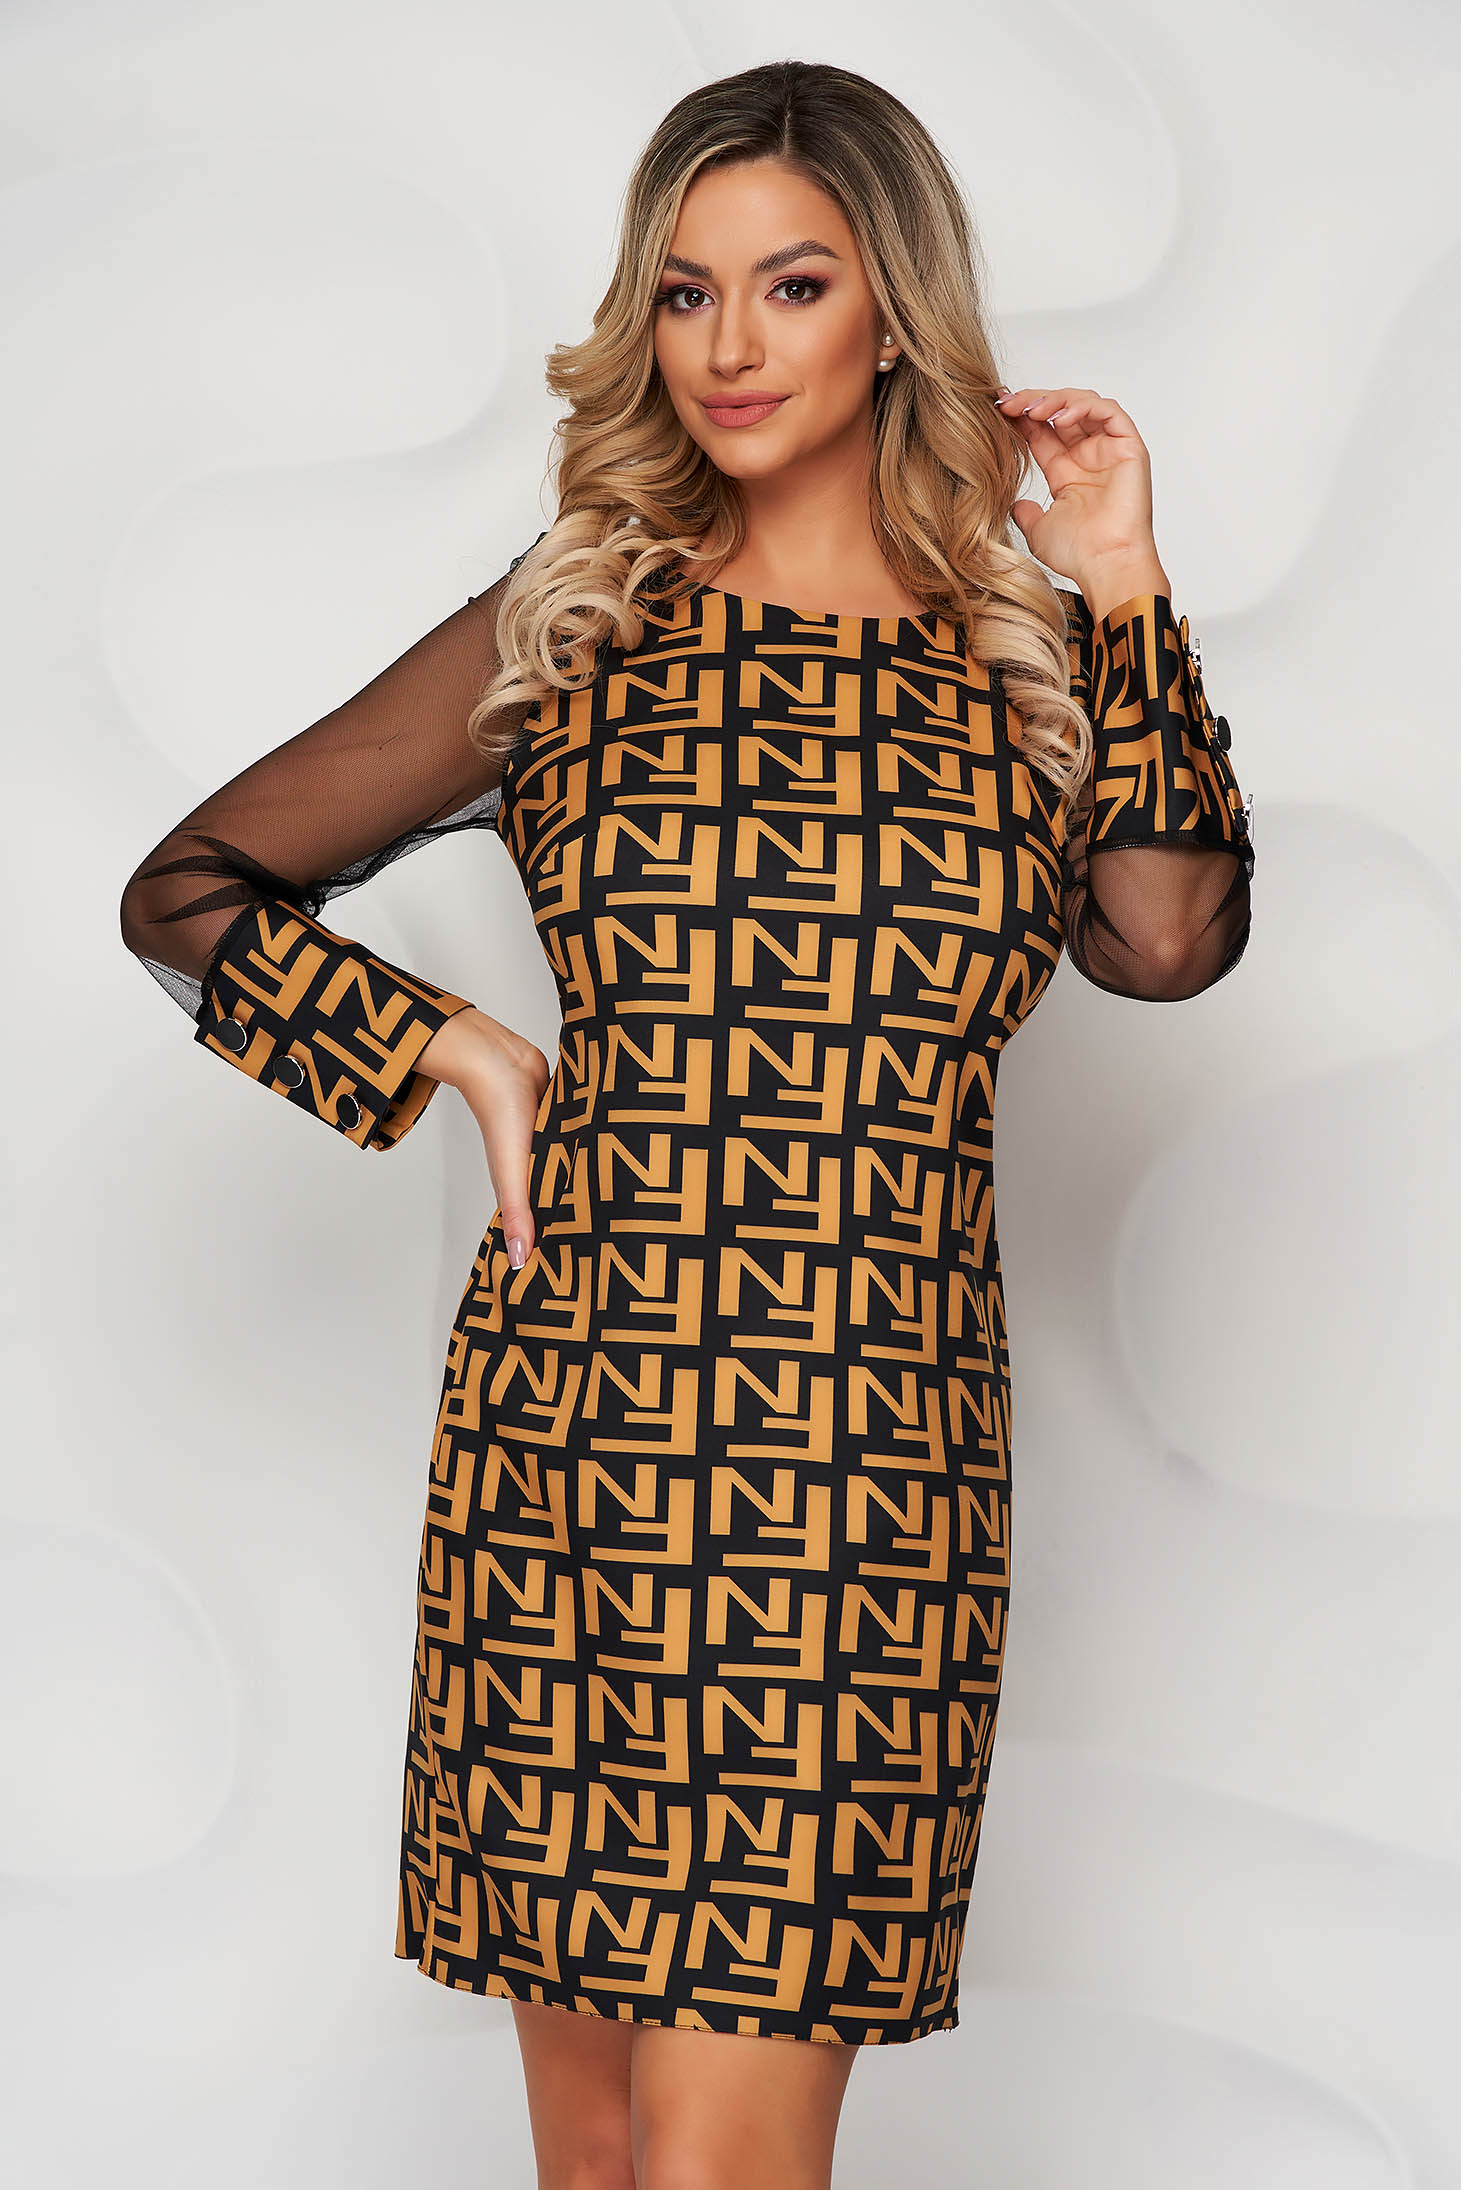 With graphic details office straight transparent sleeves yellow dress